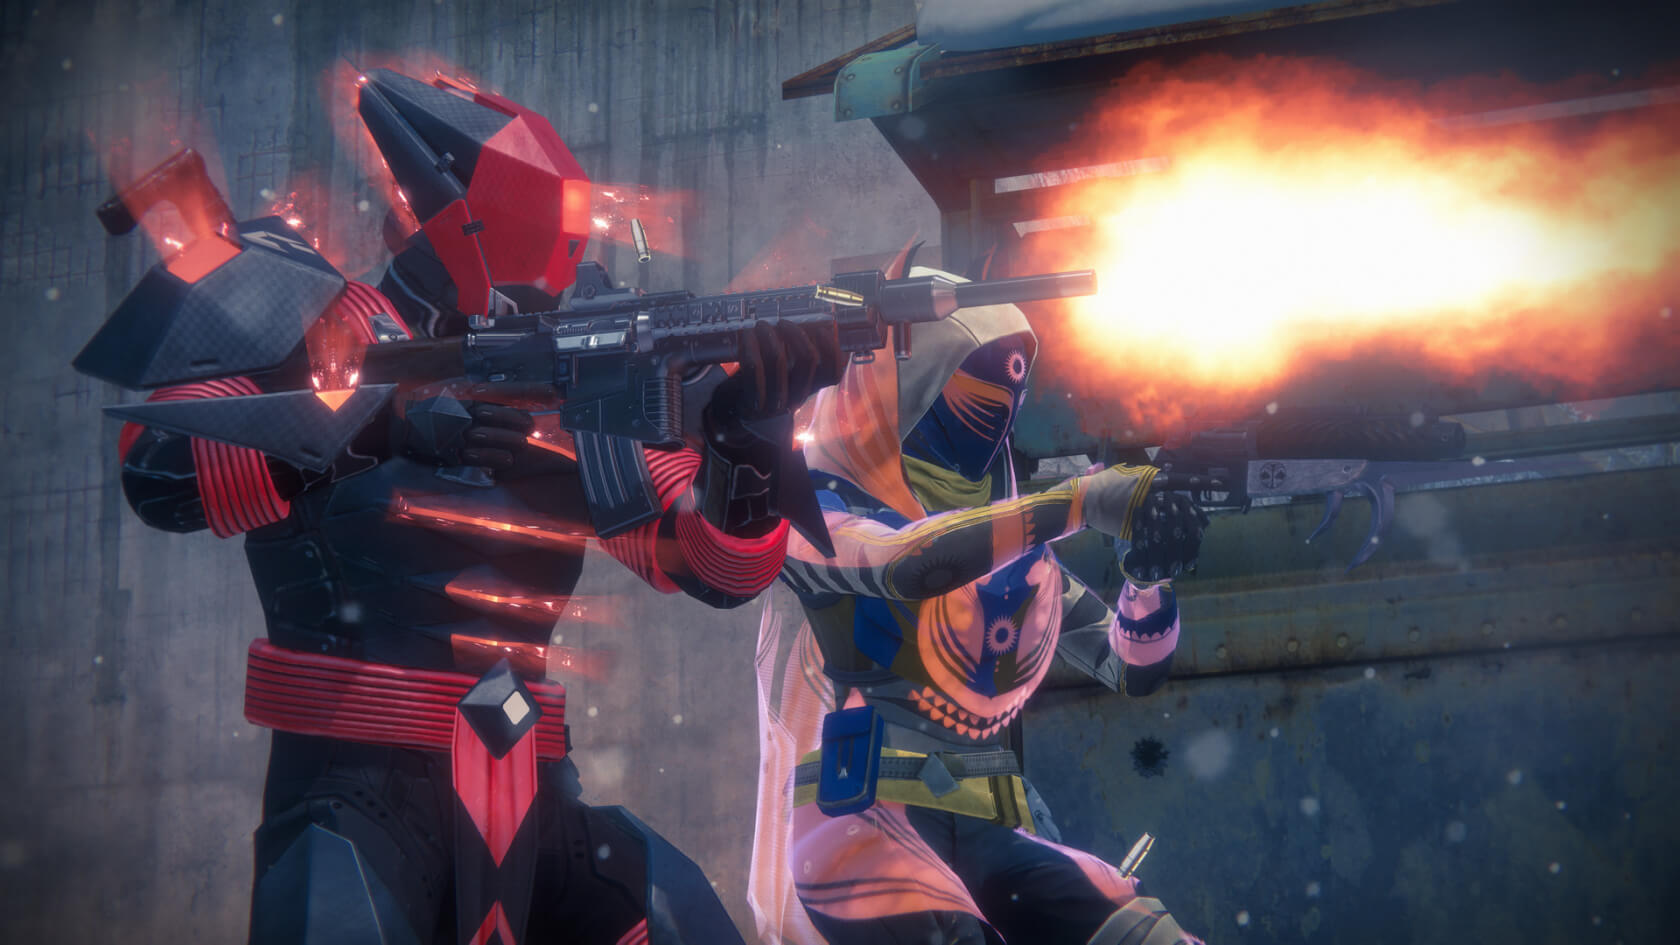 Destiny 2 players outraged at Bungie's lack of transparency regarding level rewards